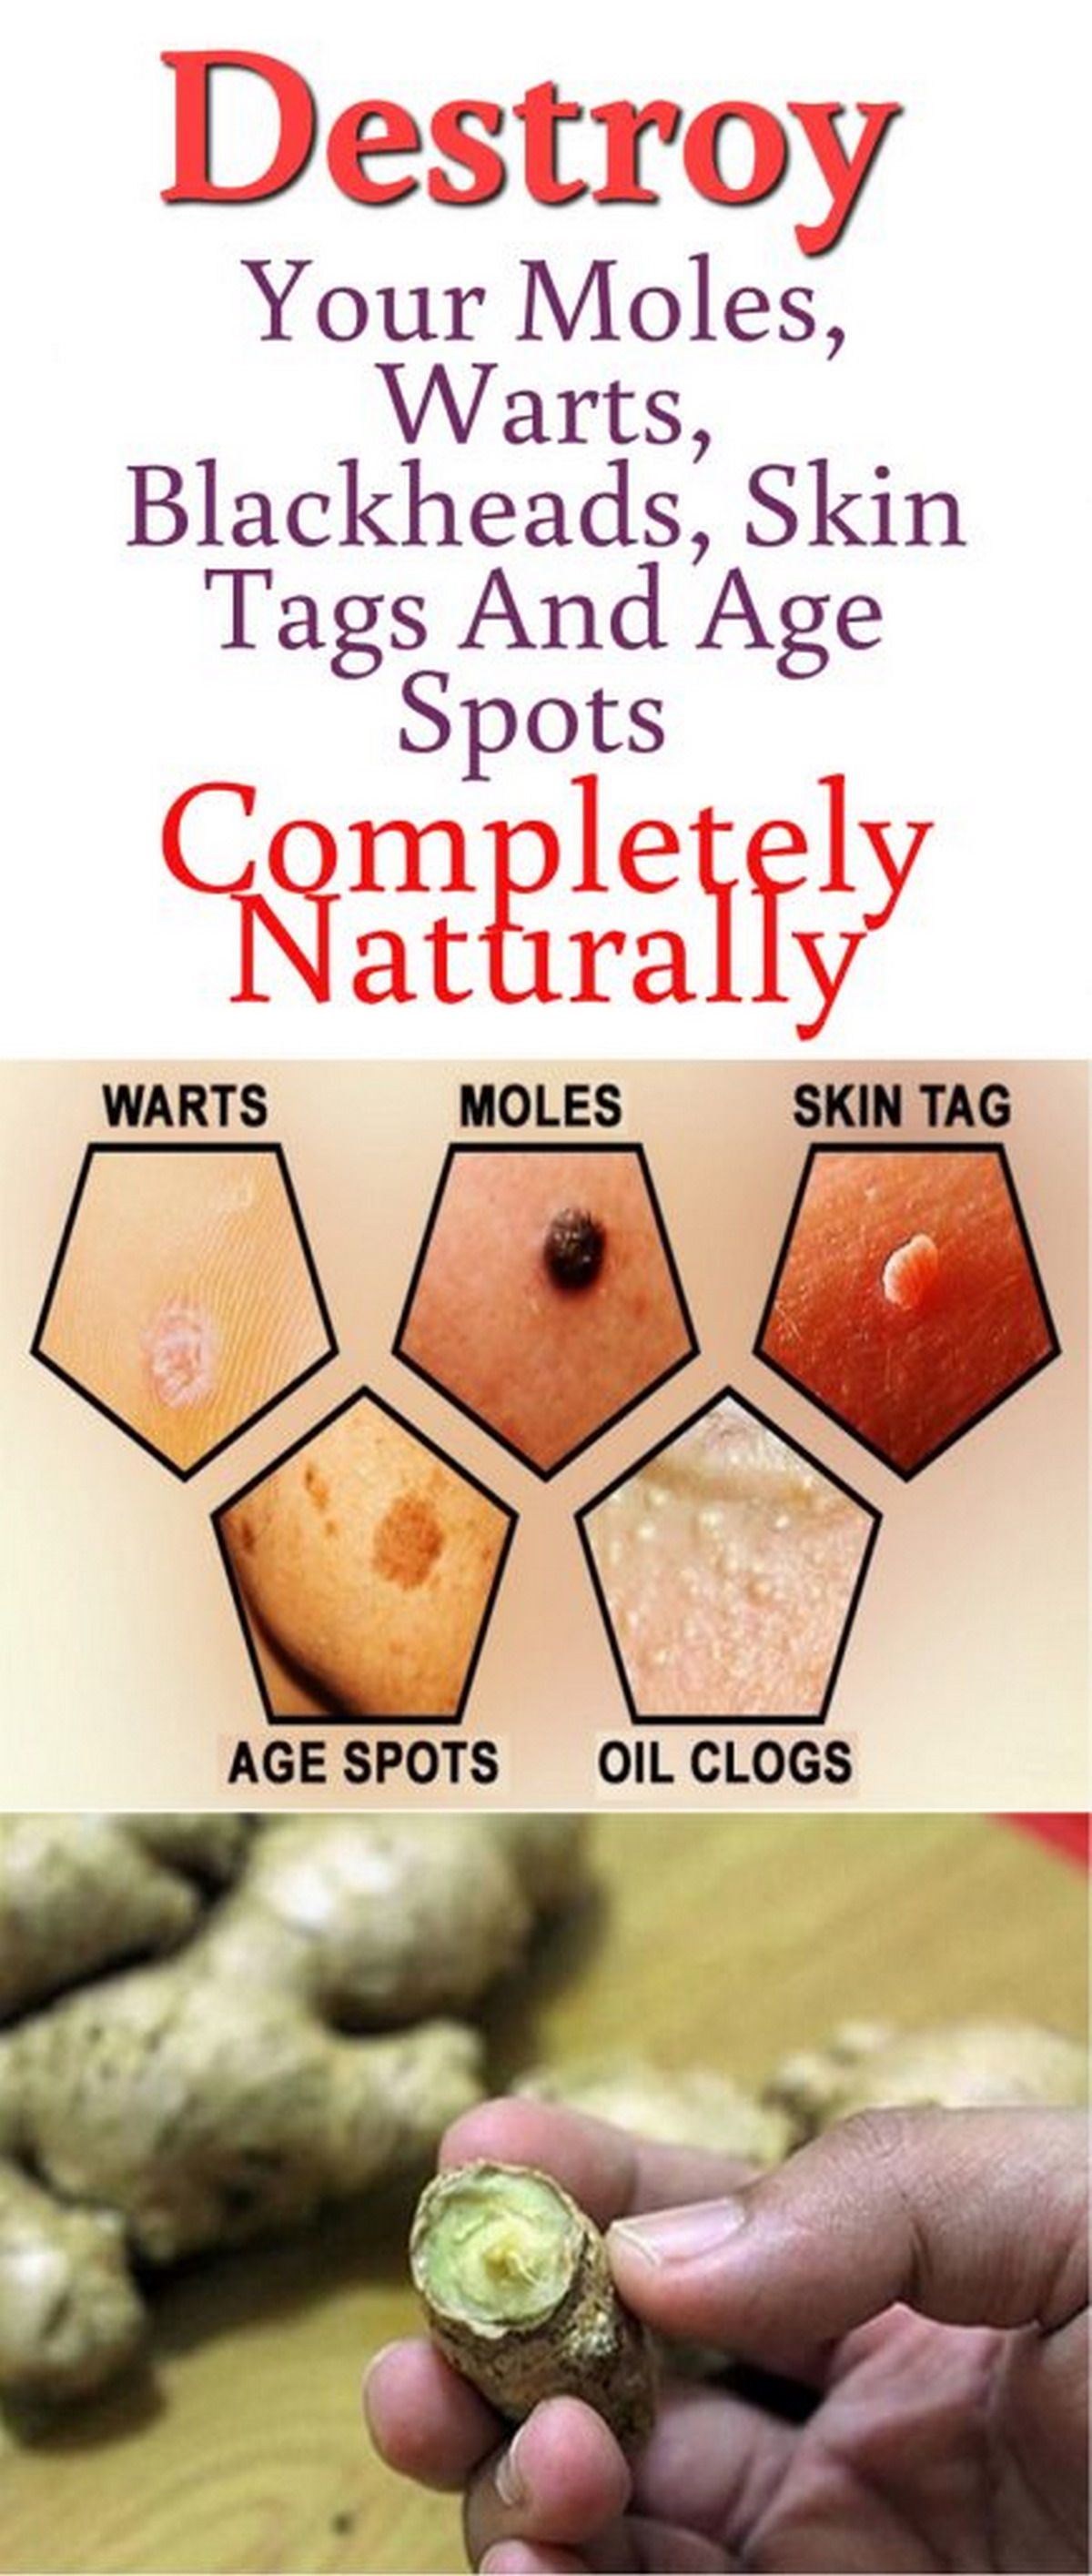 Destroy your moles warts blackheads skin tags and age